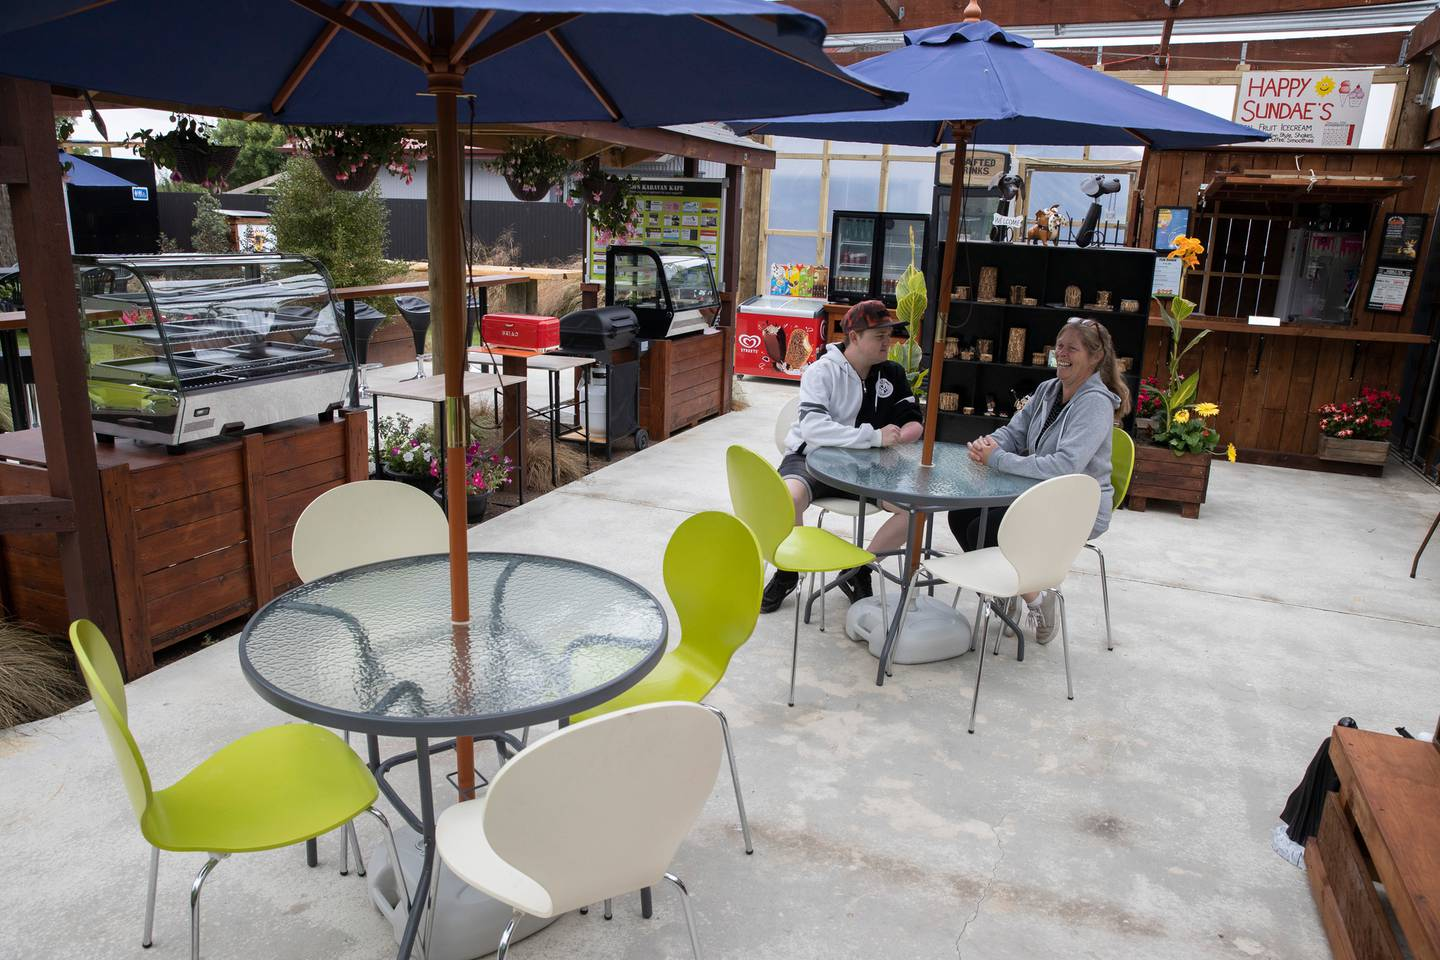 Family business ZOFS has reopened in Mayfield, Canterbury, with Jack's new real-fruit ice-cream...